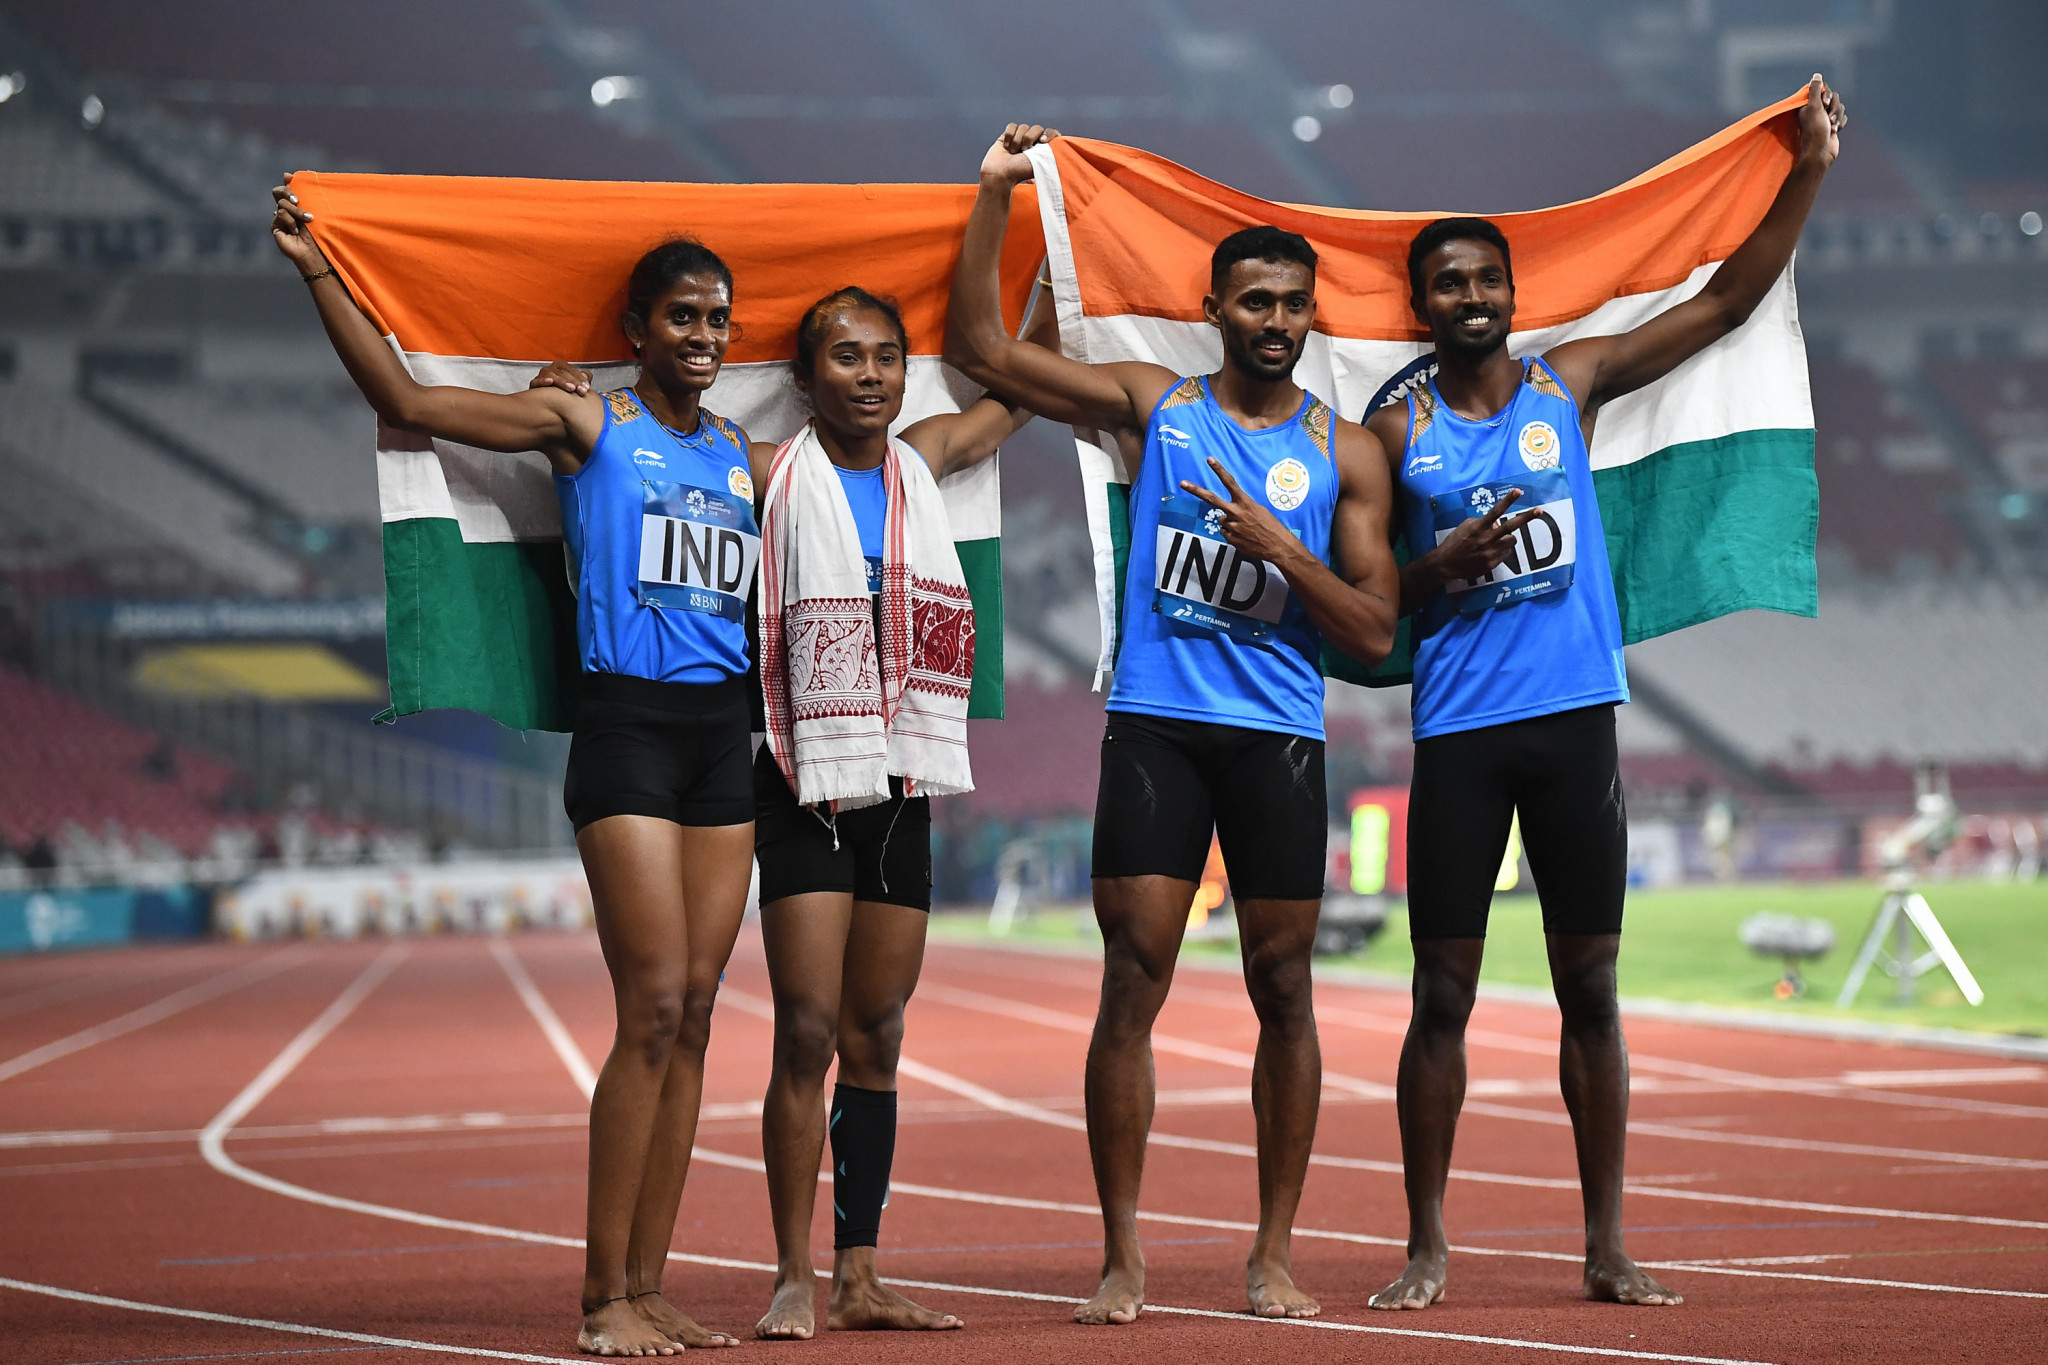 India upgraded to 2018 Asian Games 4x400m mixed relay gold after Bahraini doping ban